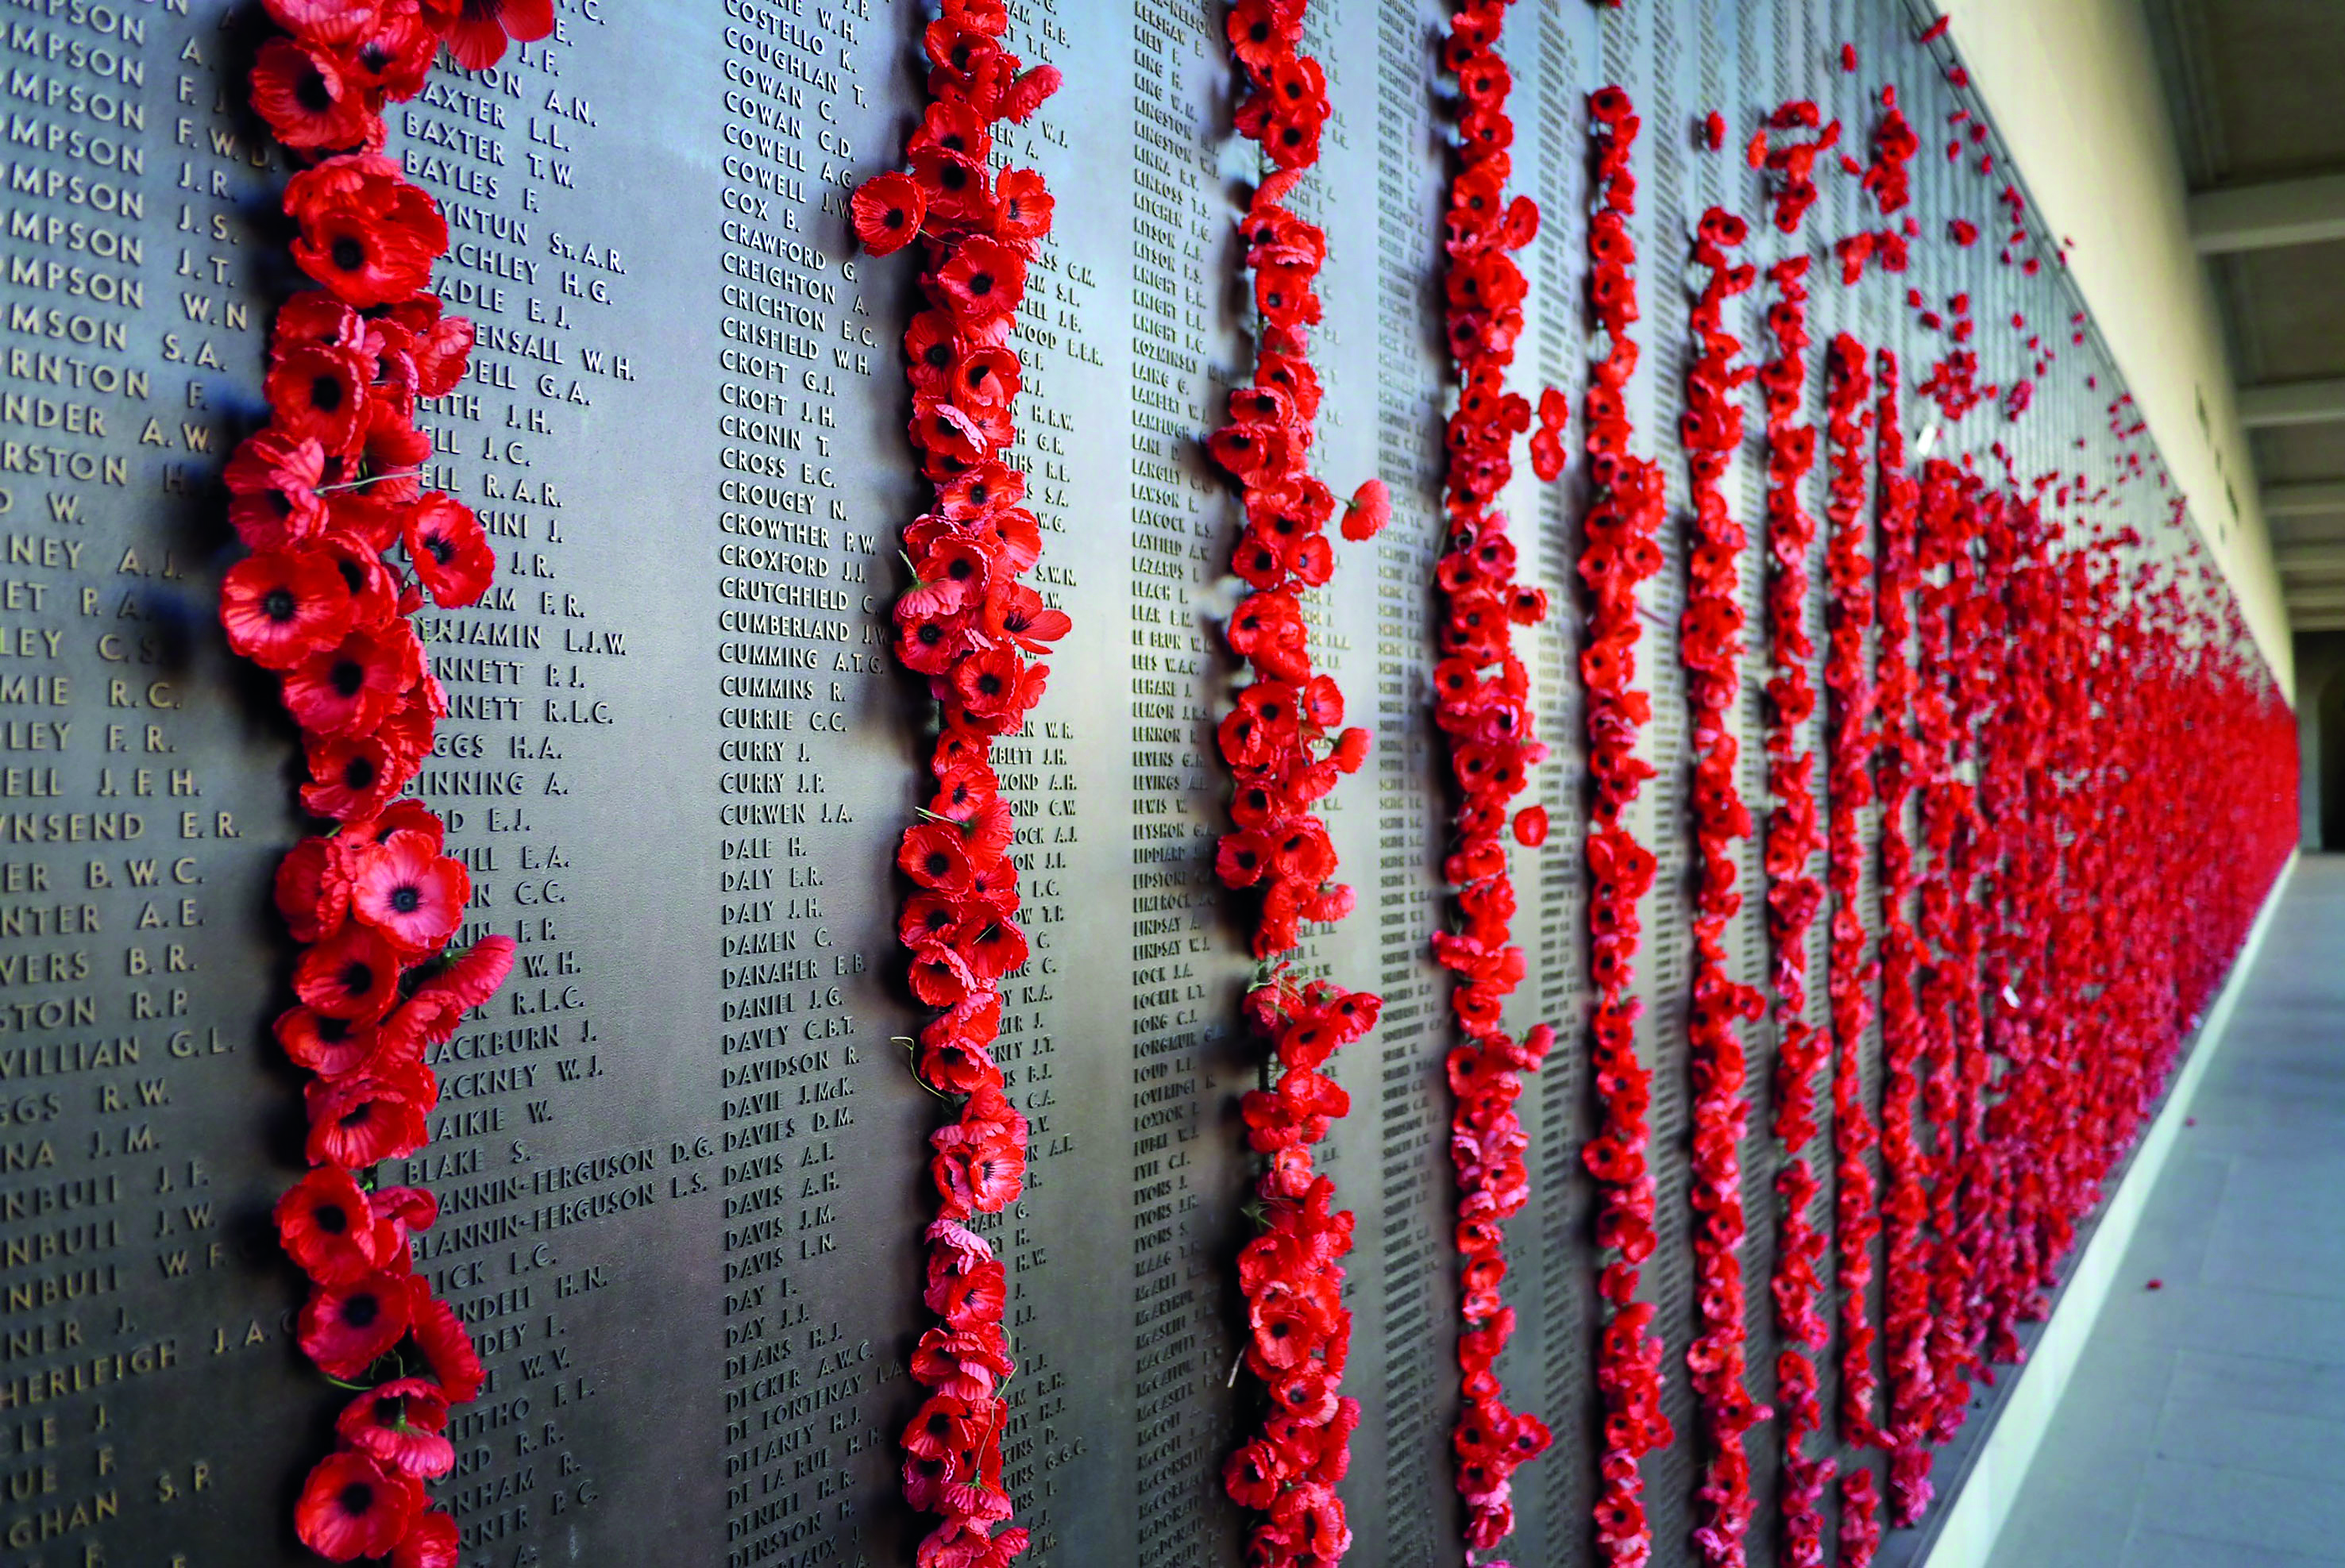 Poppies adorn the names of the fallen at the Australian War Memorial in Canberra.